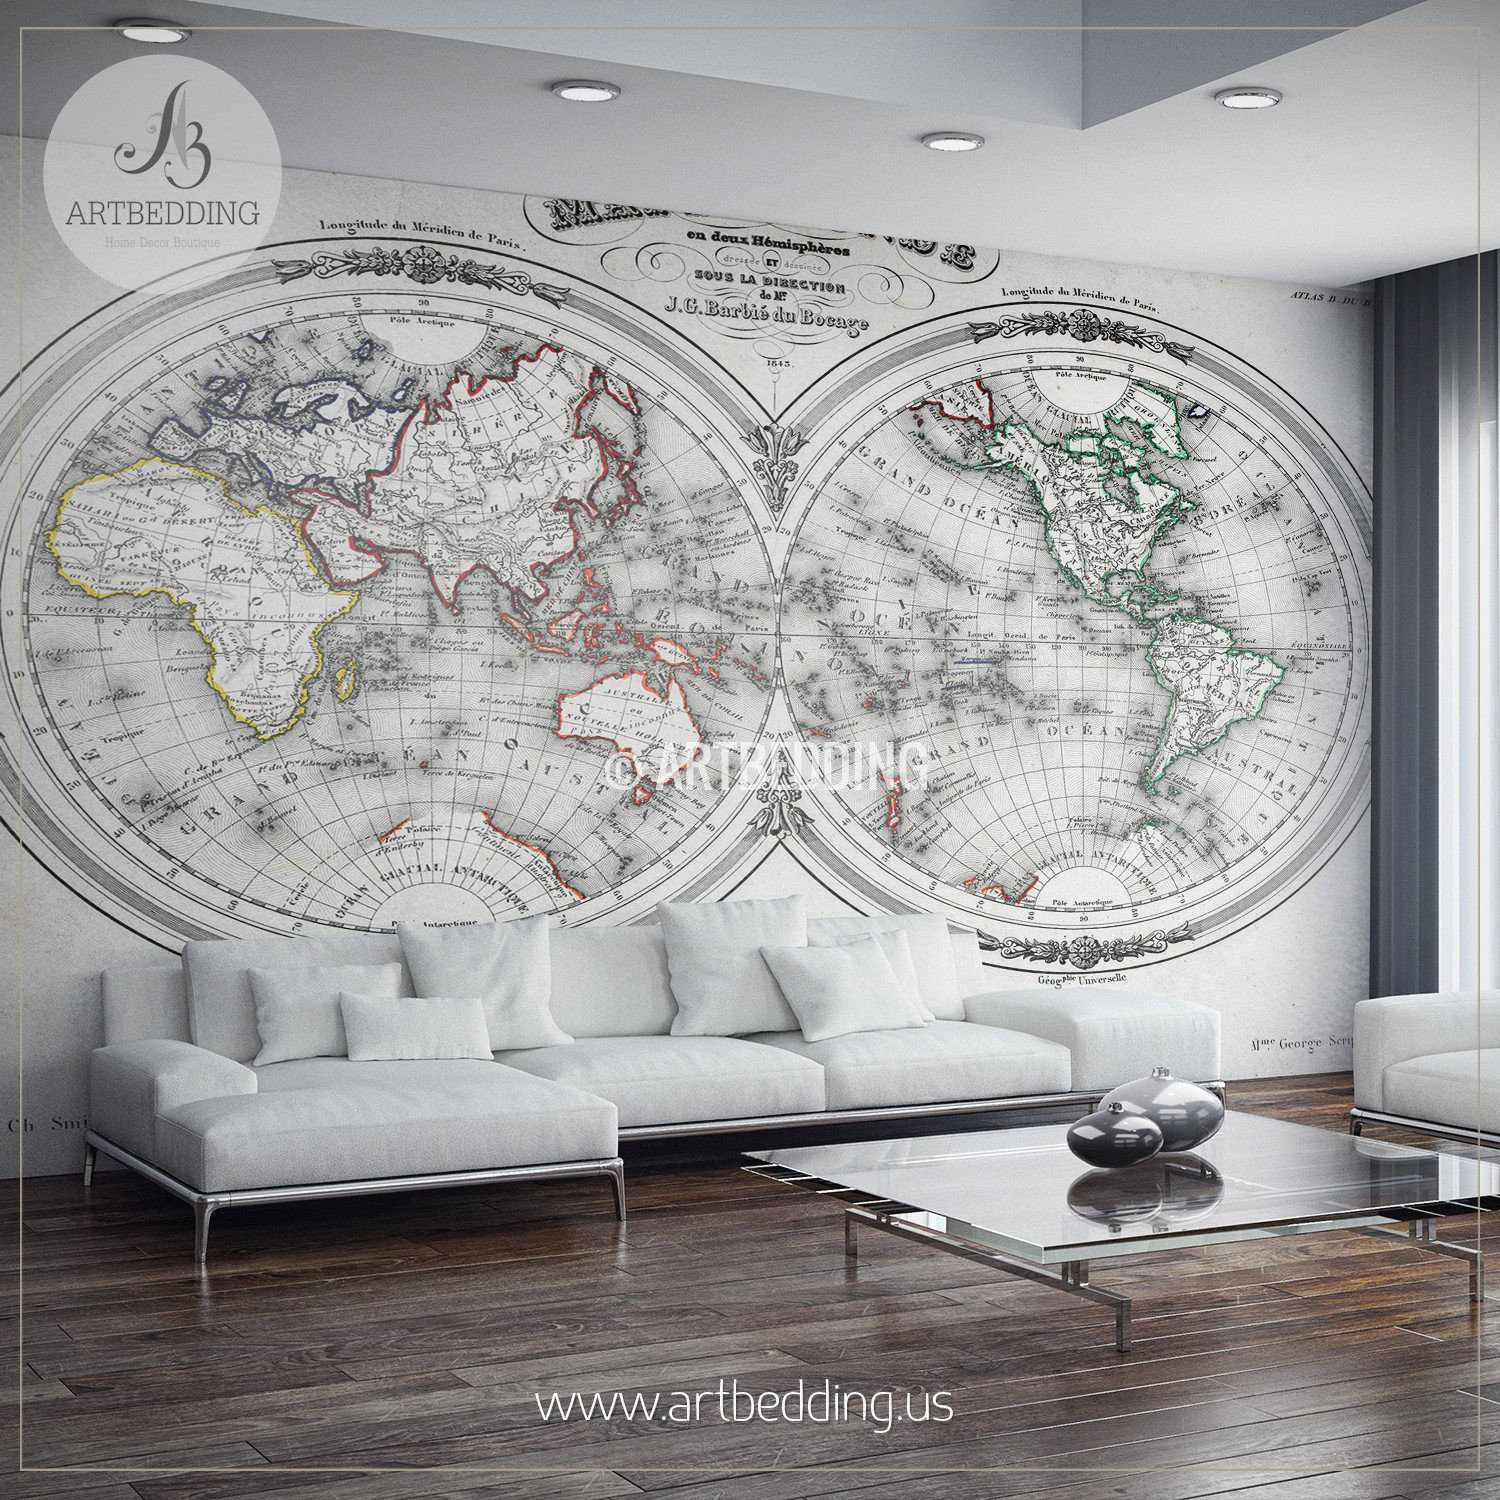 Old World Map Mural.Vintage Map Wall Mural Self Adhesive Photo Mural Artbedding